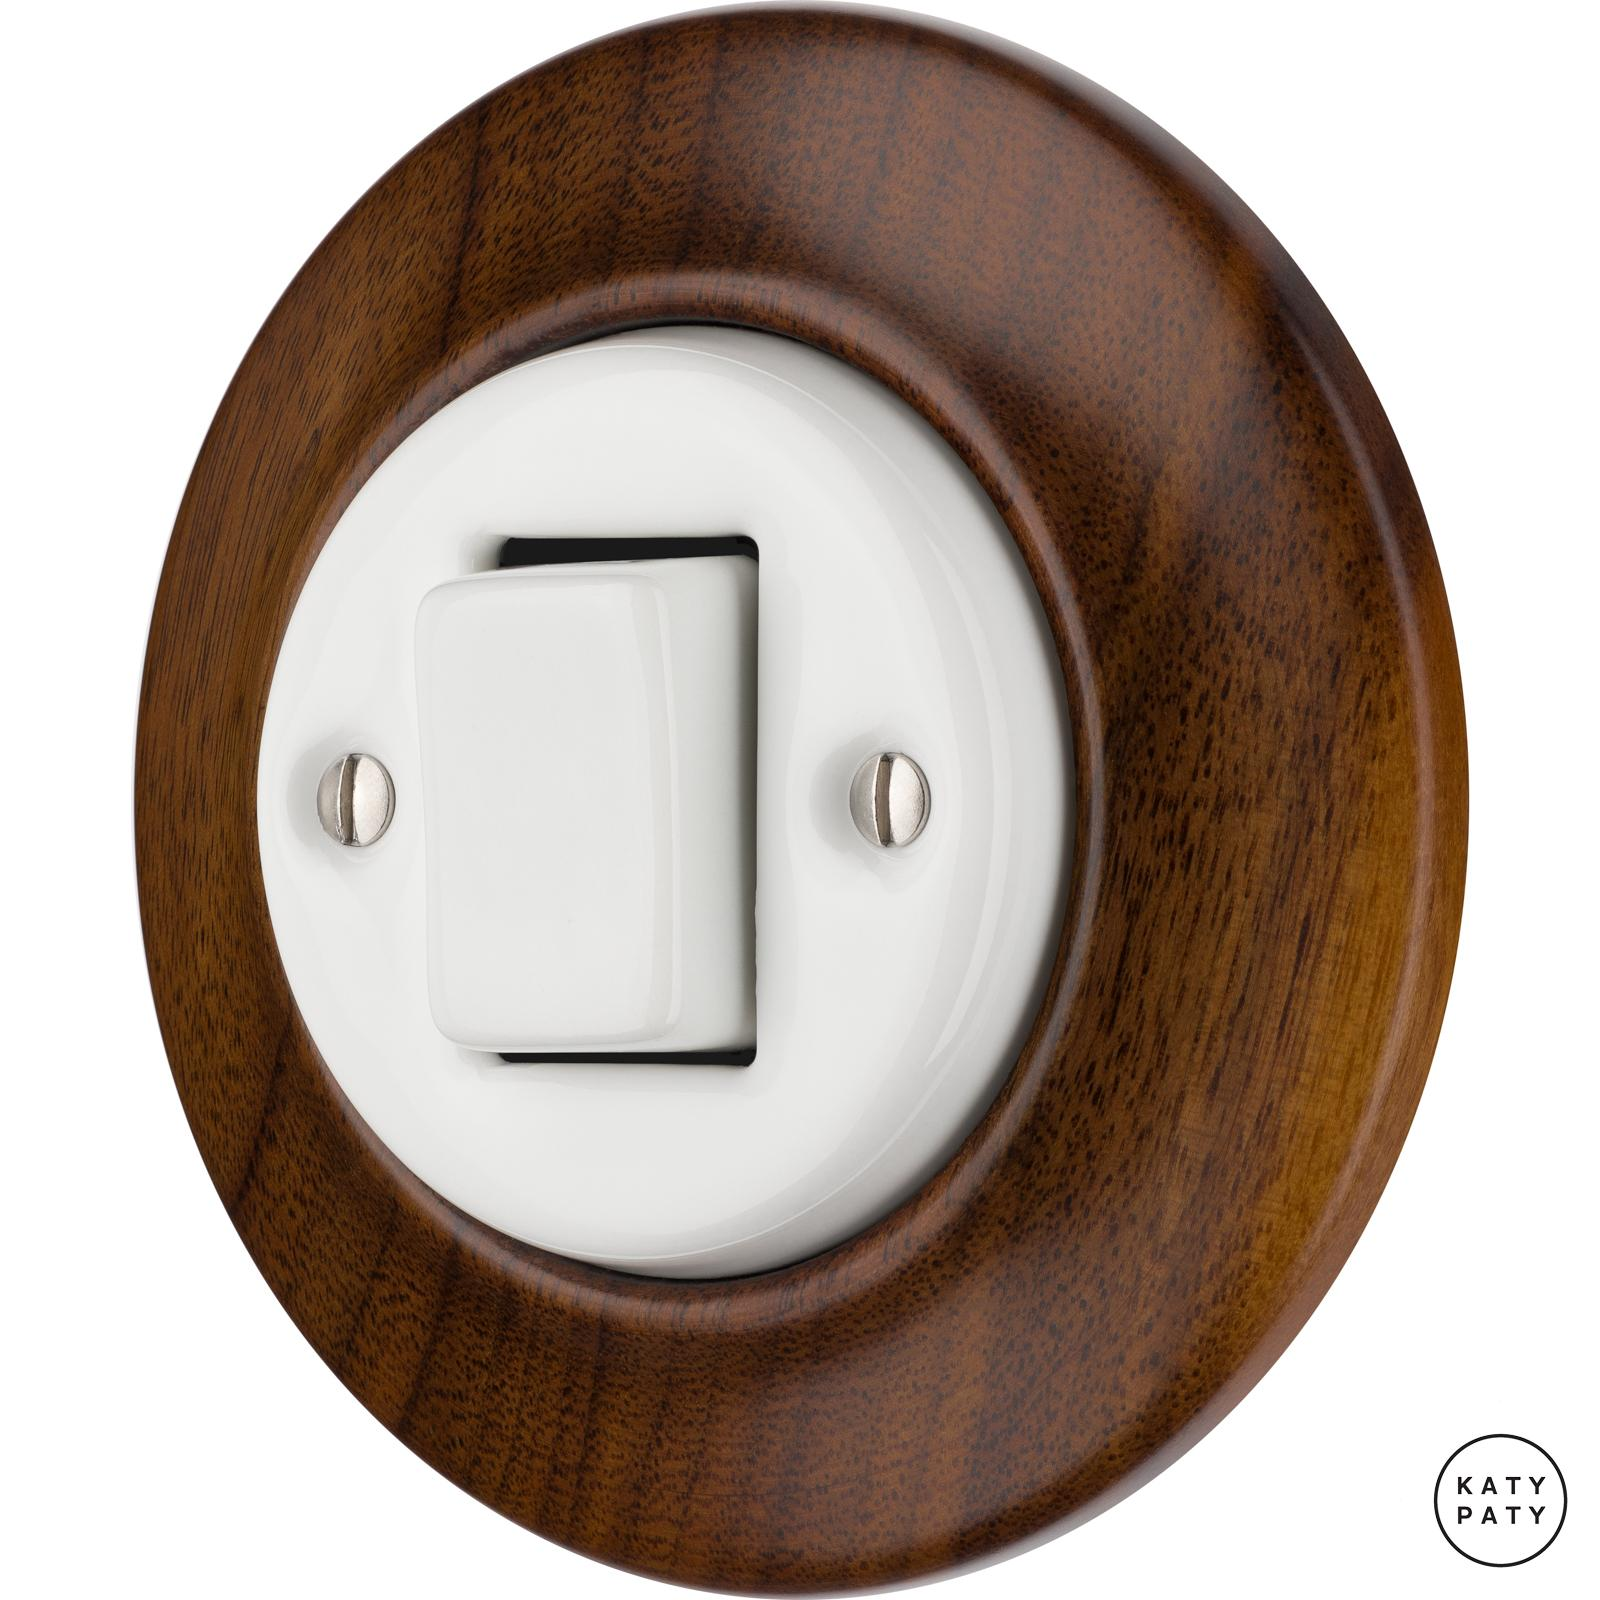 Porcelain switches - a 1 key - FAT ()  - NUCLEUS | Katy Paty